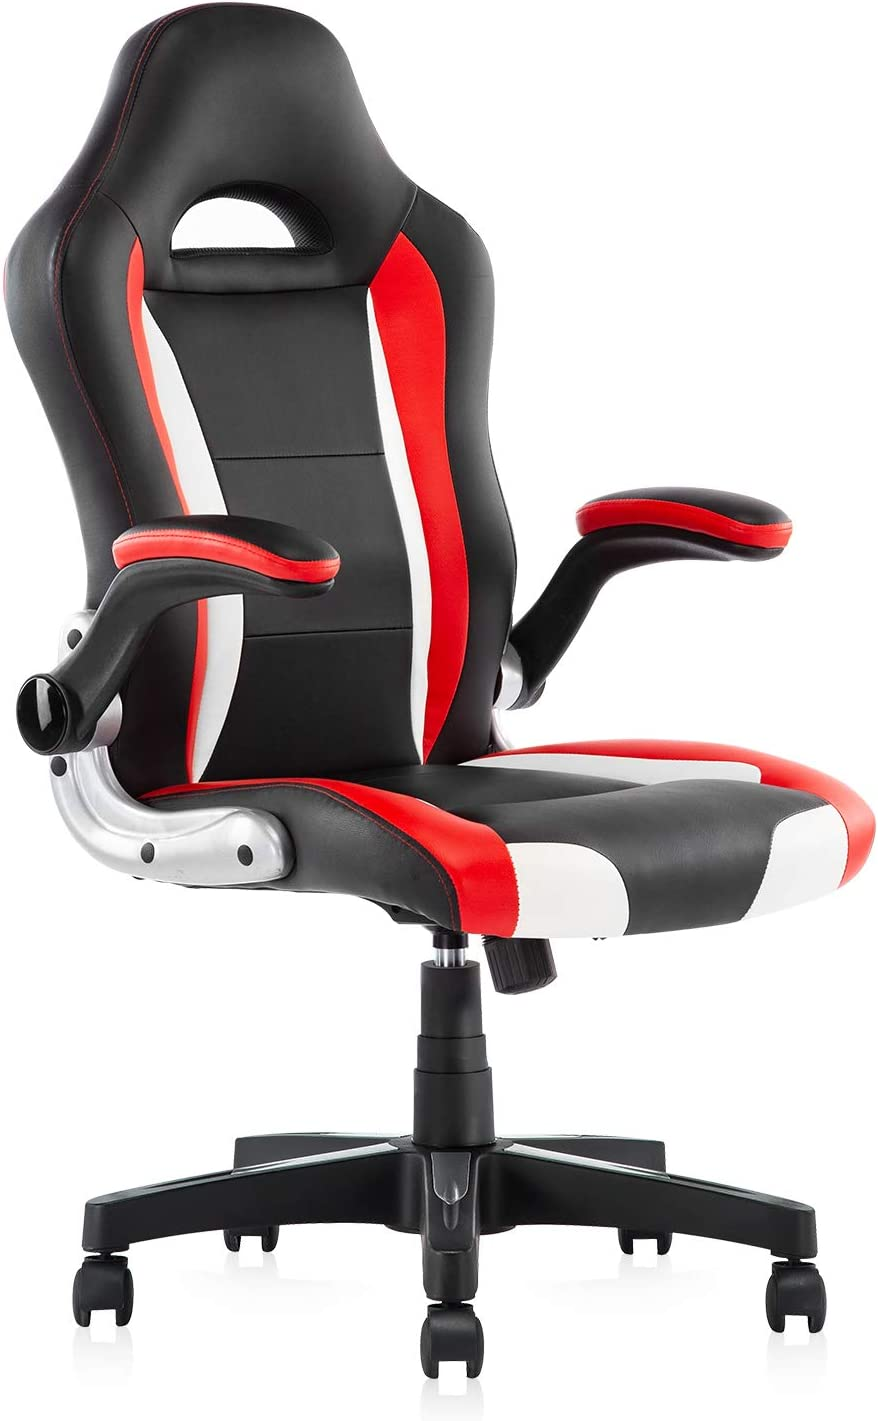 Computer Gaming Chair – Racing Chair pu Leather Bucket Seat,Ergonomic Office Chair High Back Lumbar Support Executive Desk Chair Red Black